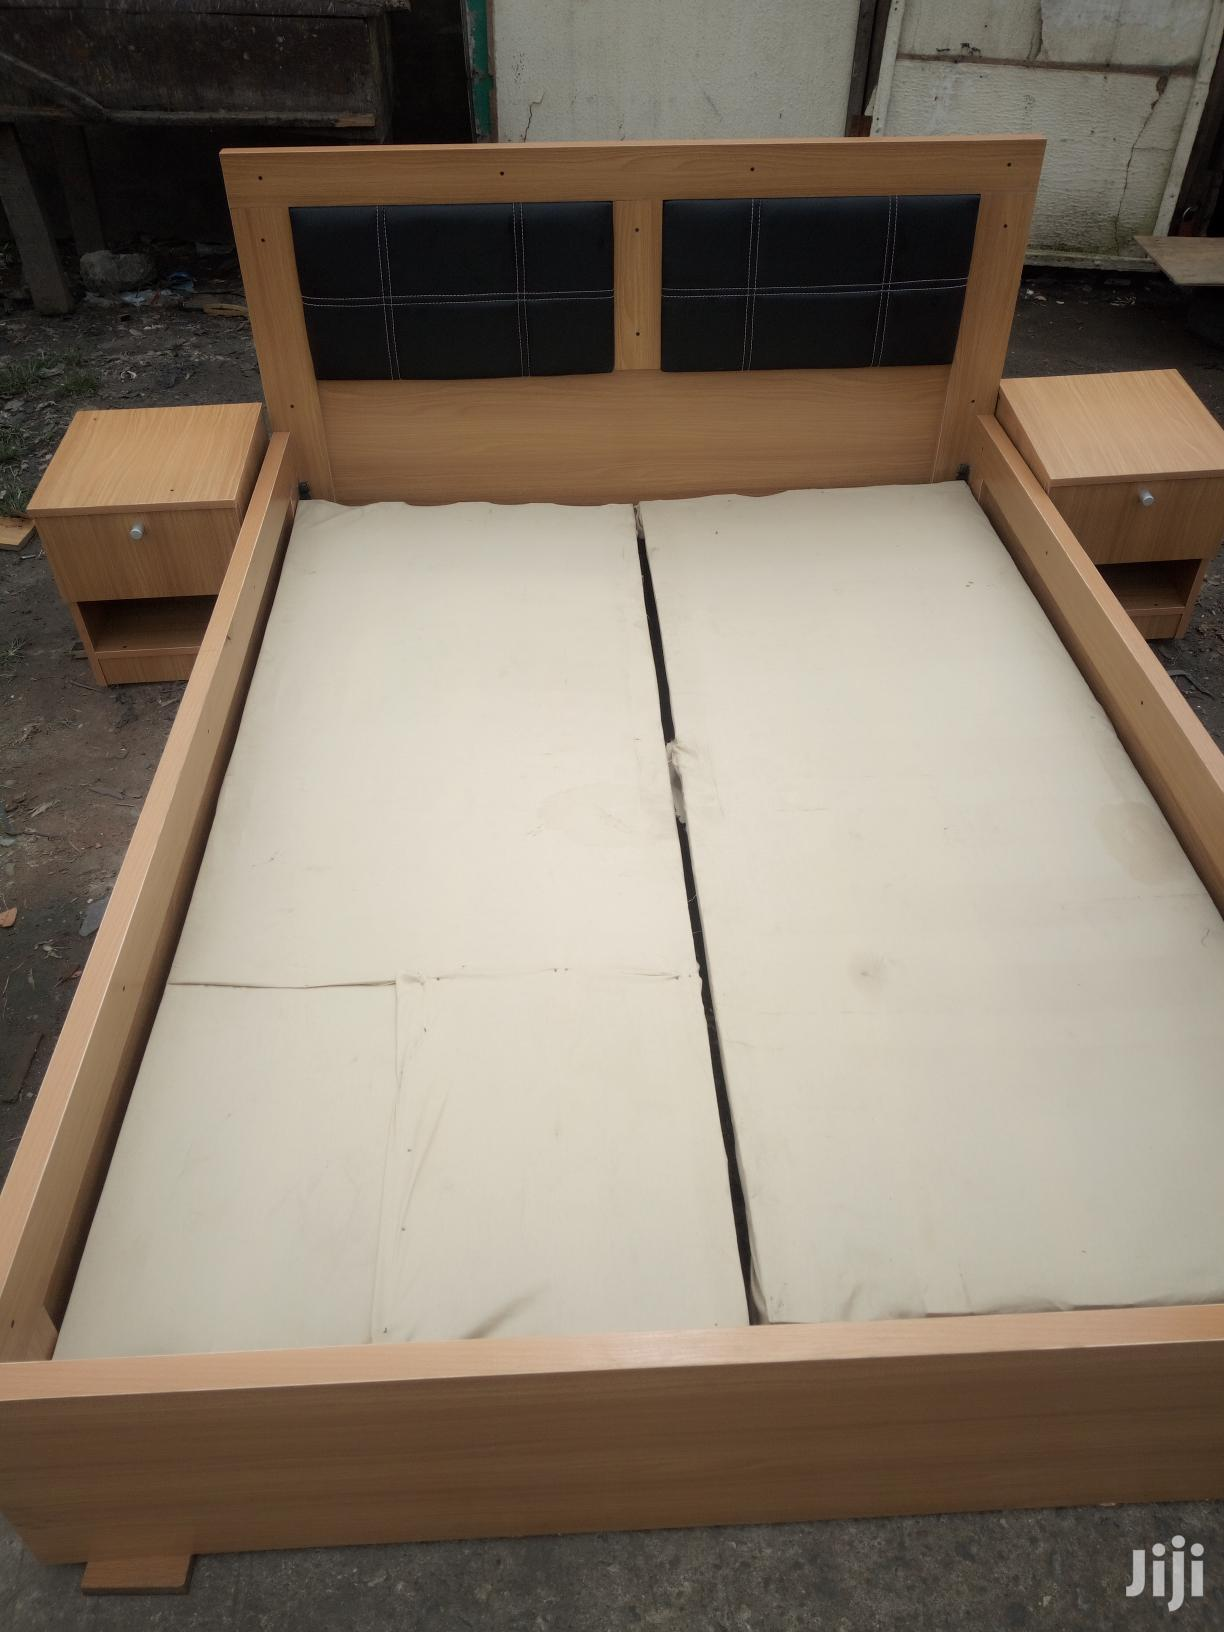 Bed Frames | Furniture for sale in Mushin, Lagos State, Nigeria